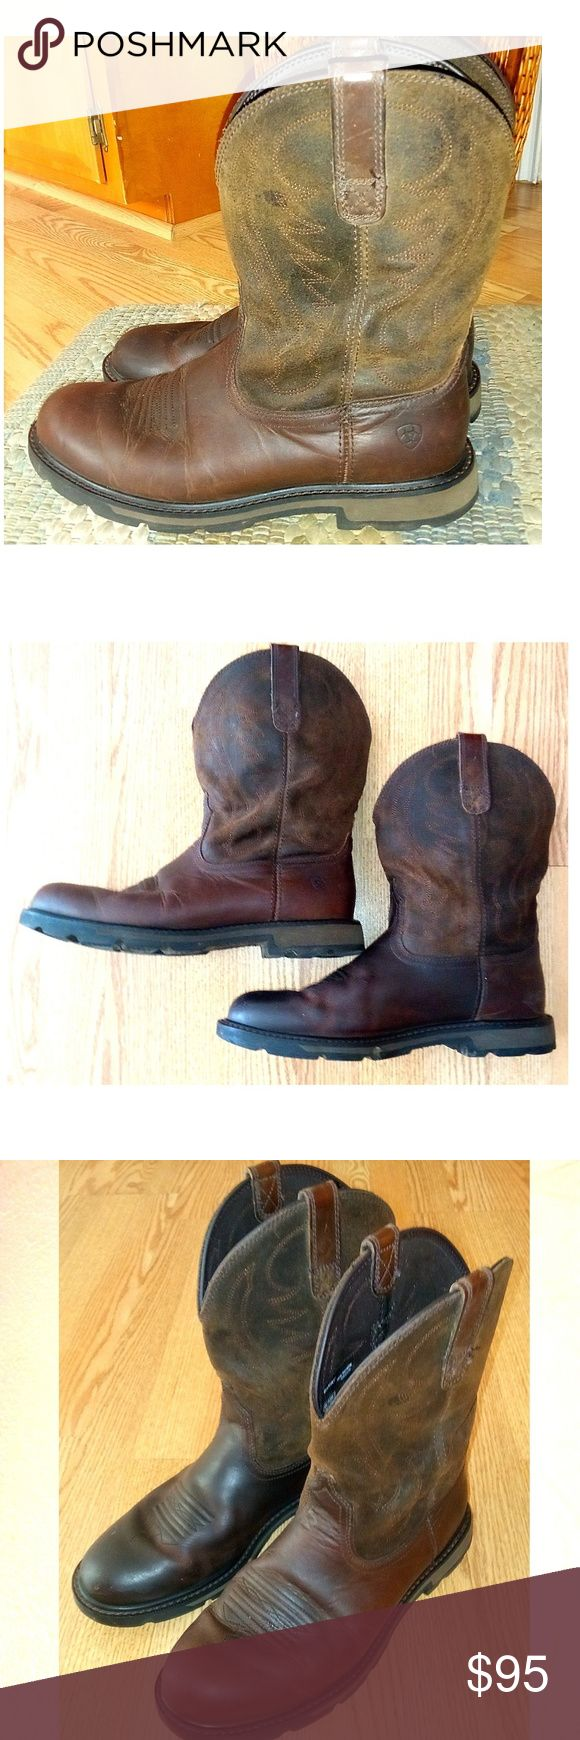 Ariat western cowboy work boots brown  men's 10.5D Sharp in excellent condition ARIAT brown leather western work boots men's size 10.5.  All leather boots with heavy rubber soles these boots were worn only a few times. See the pics of the soles. Ariat Shoes Cowboy & Western Boots